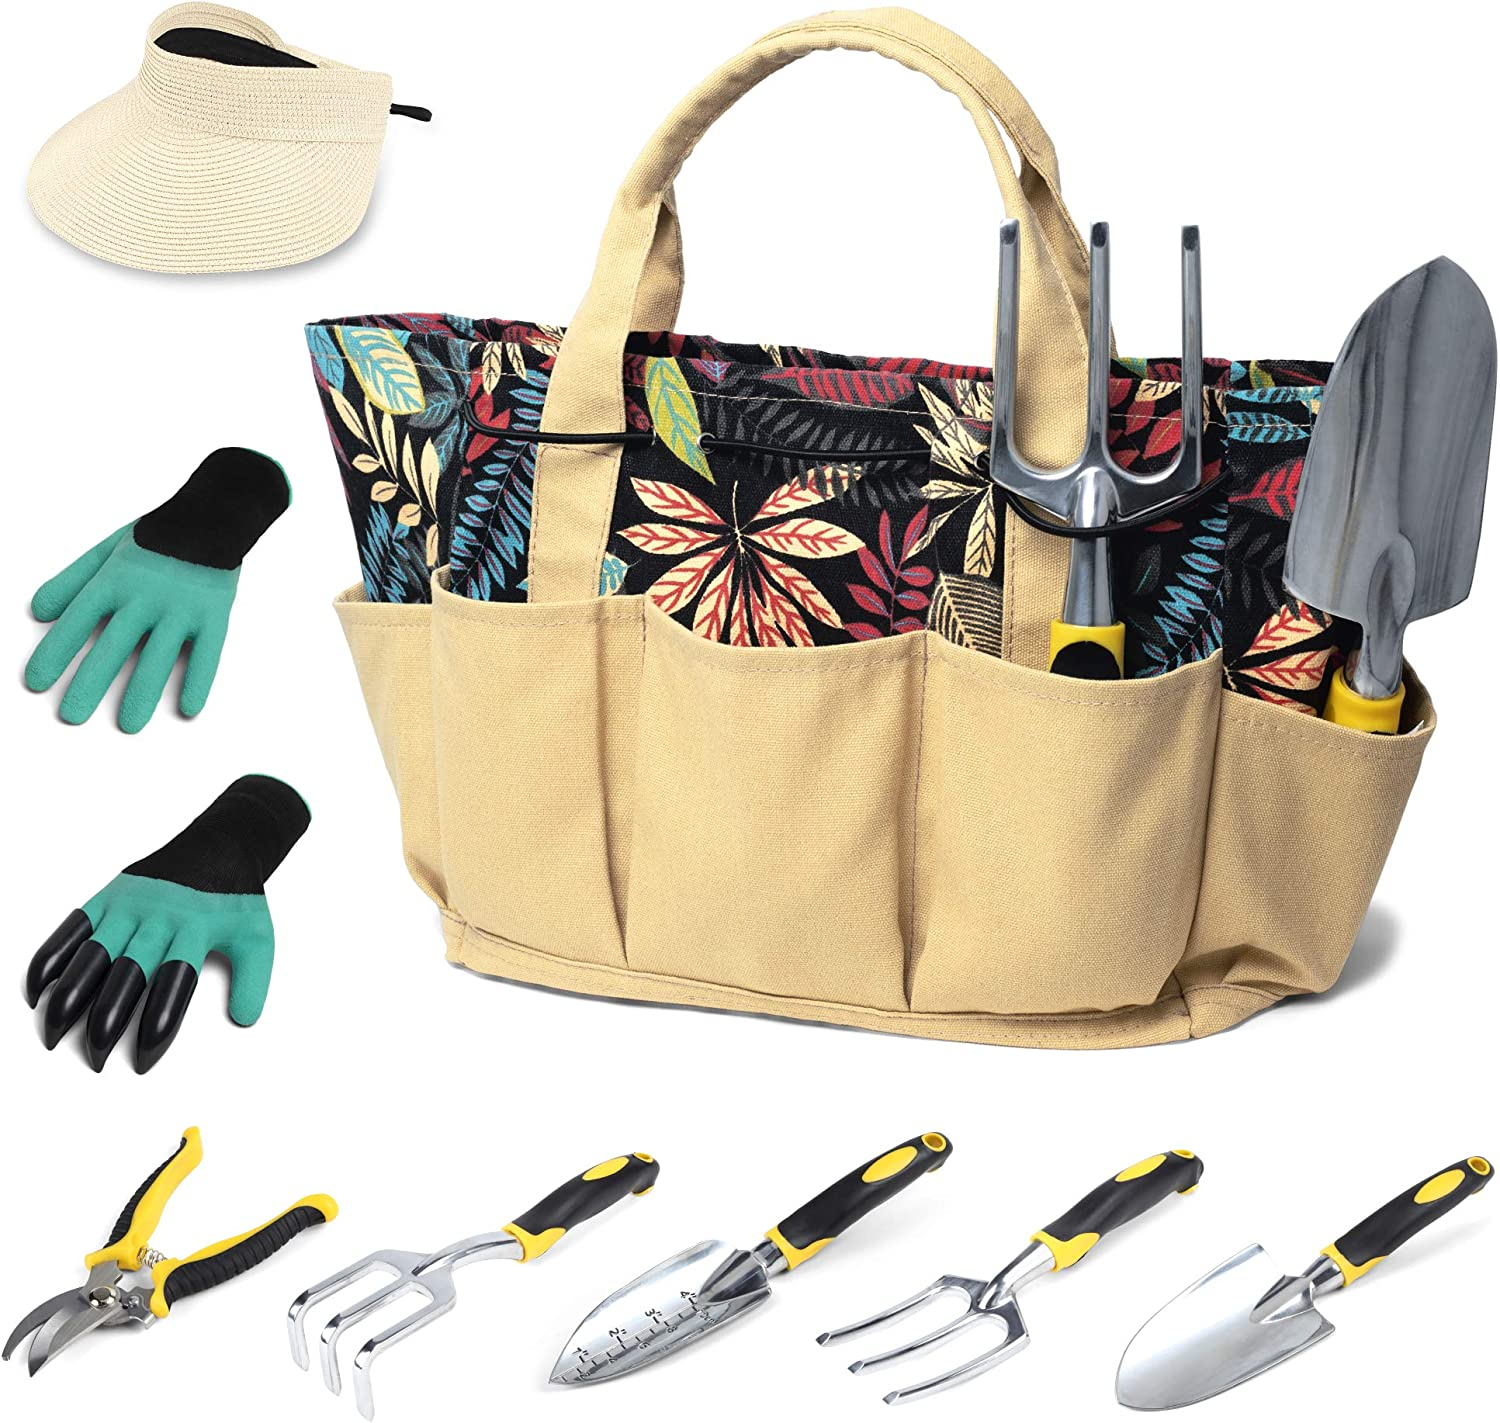 GOODROAD Garden Tool Set for Women, Garden Tools for Gardening with Stylish Floral Tote, Gardening Set, 8 Pieces Garden Kit Heavy Duty, Include Woman Gloves and Sun Visor